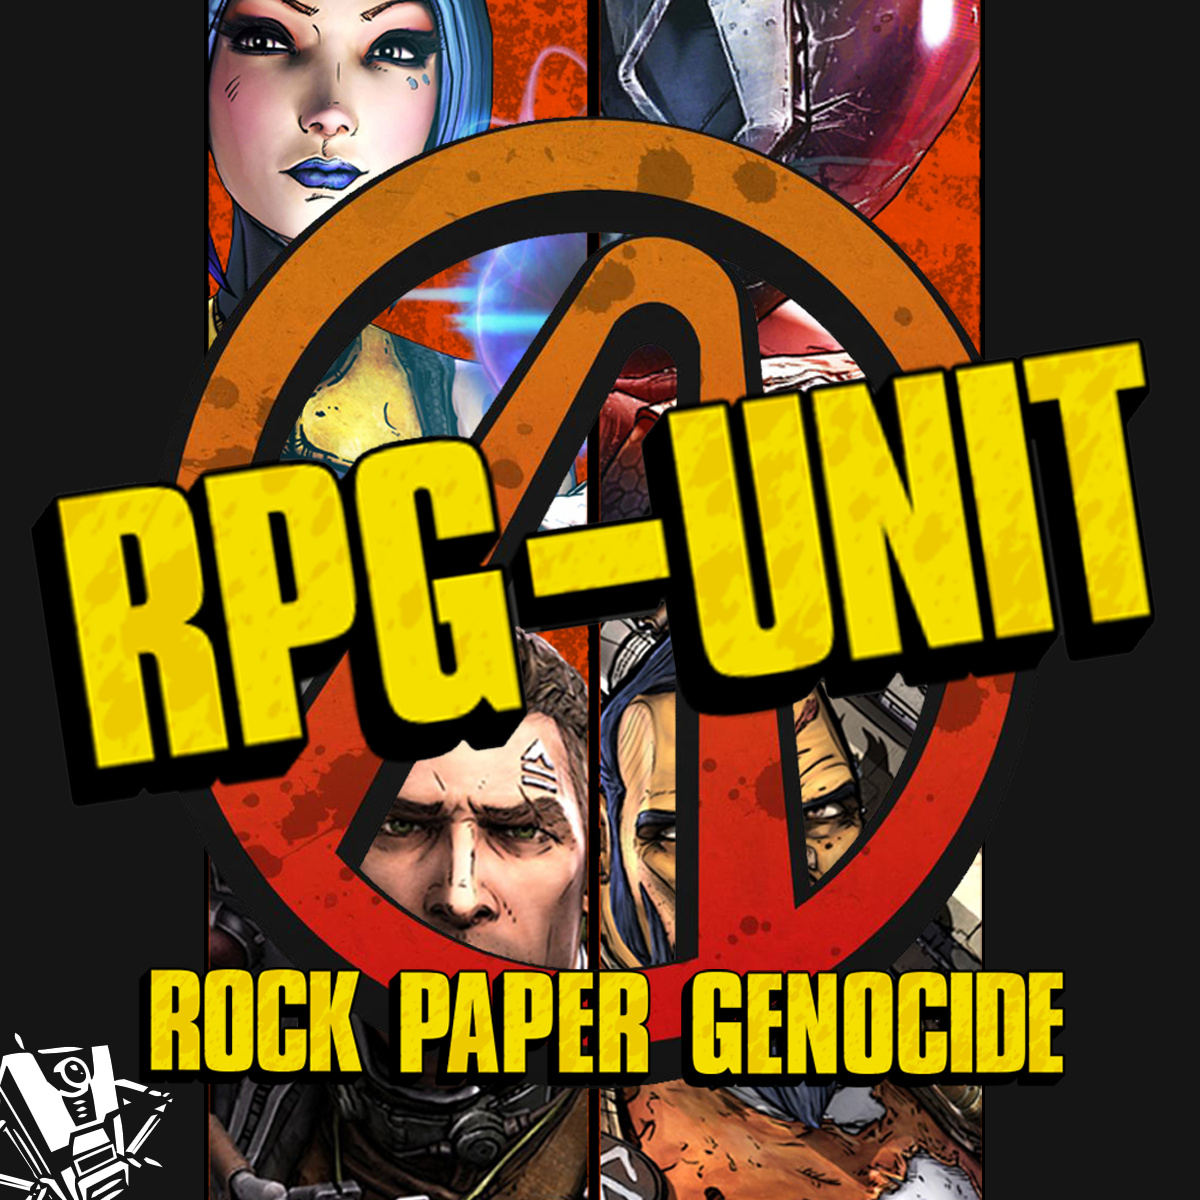 rpg-unit-nerdcore-hip-hop-rock-paper-genocide